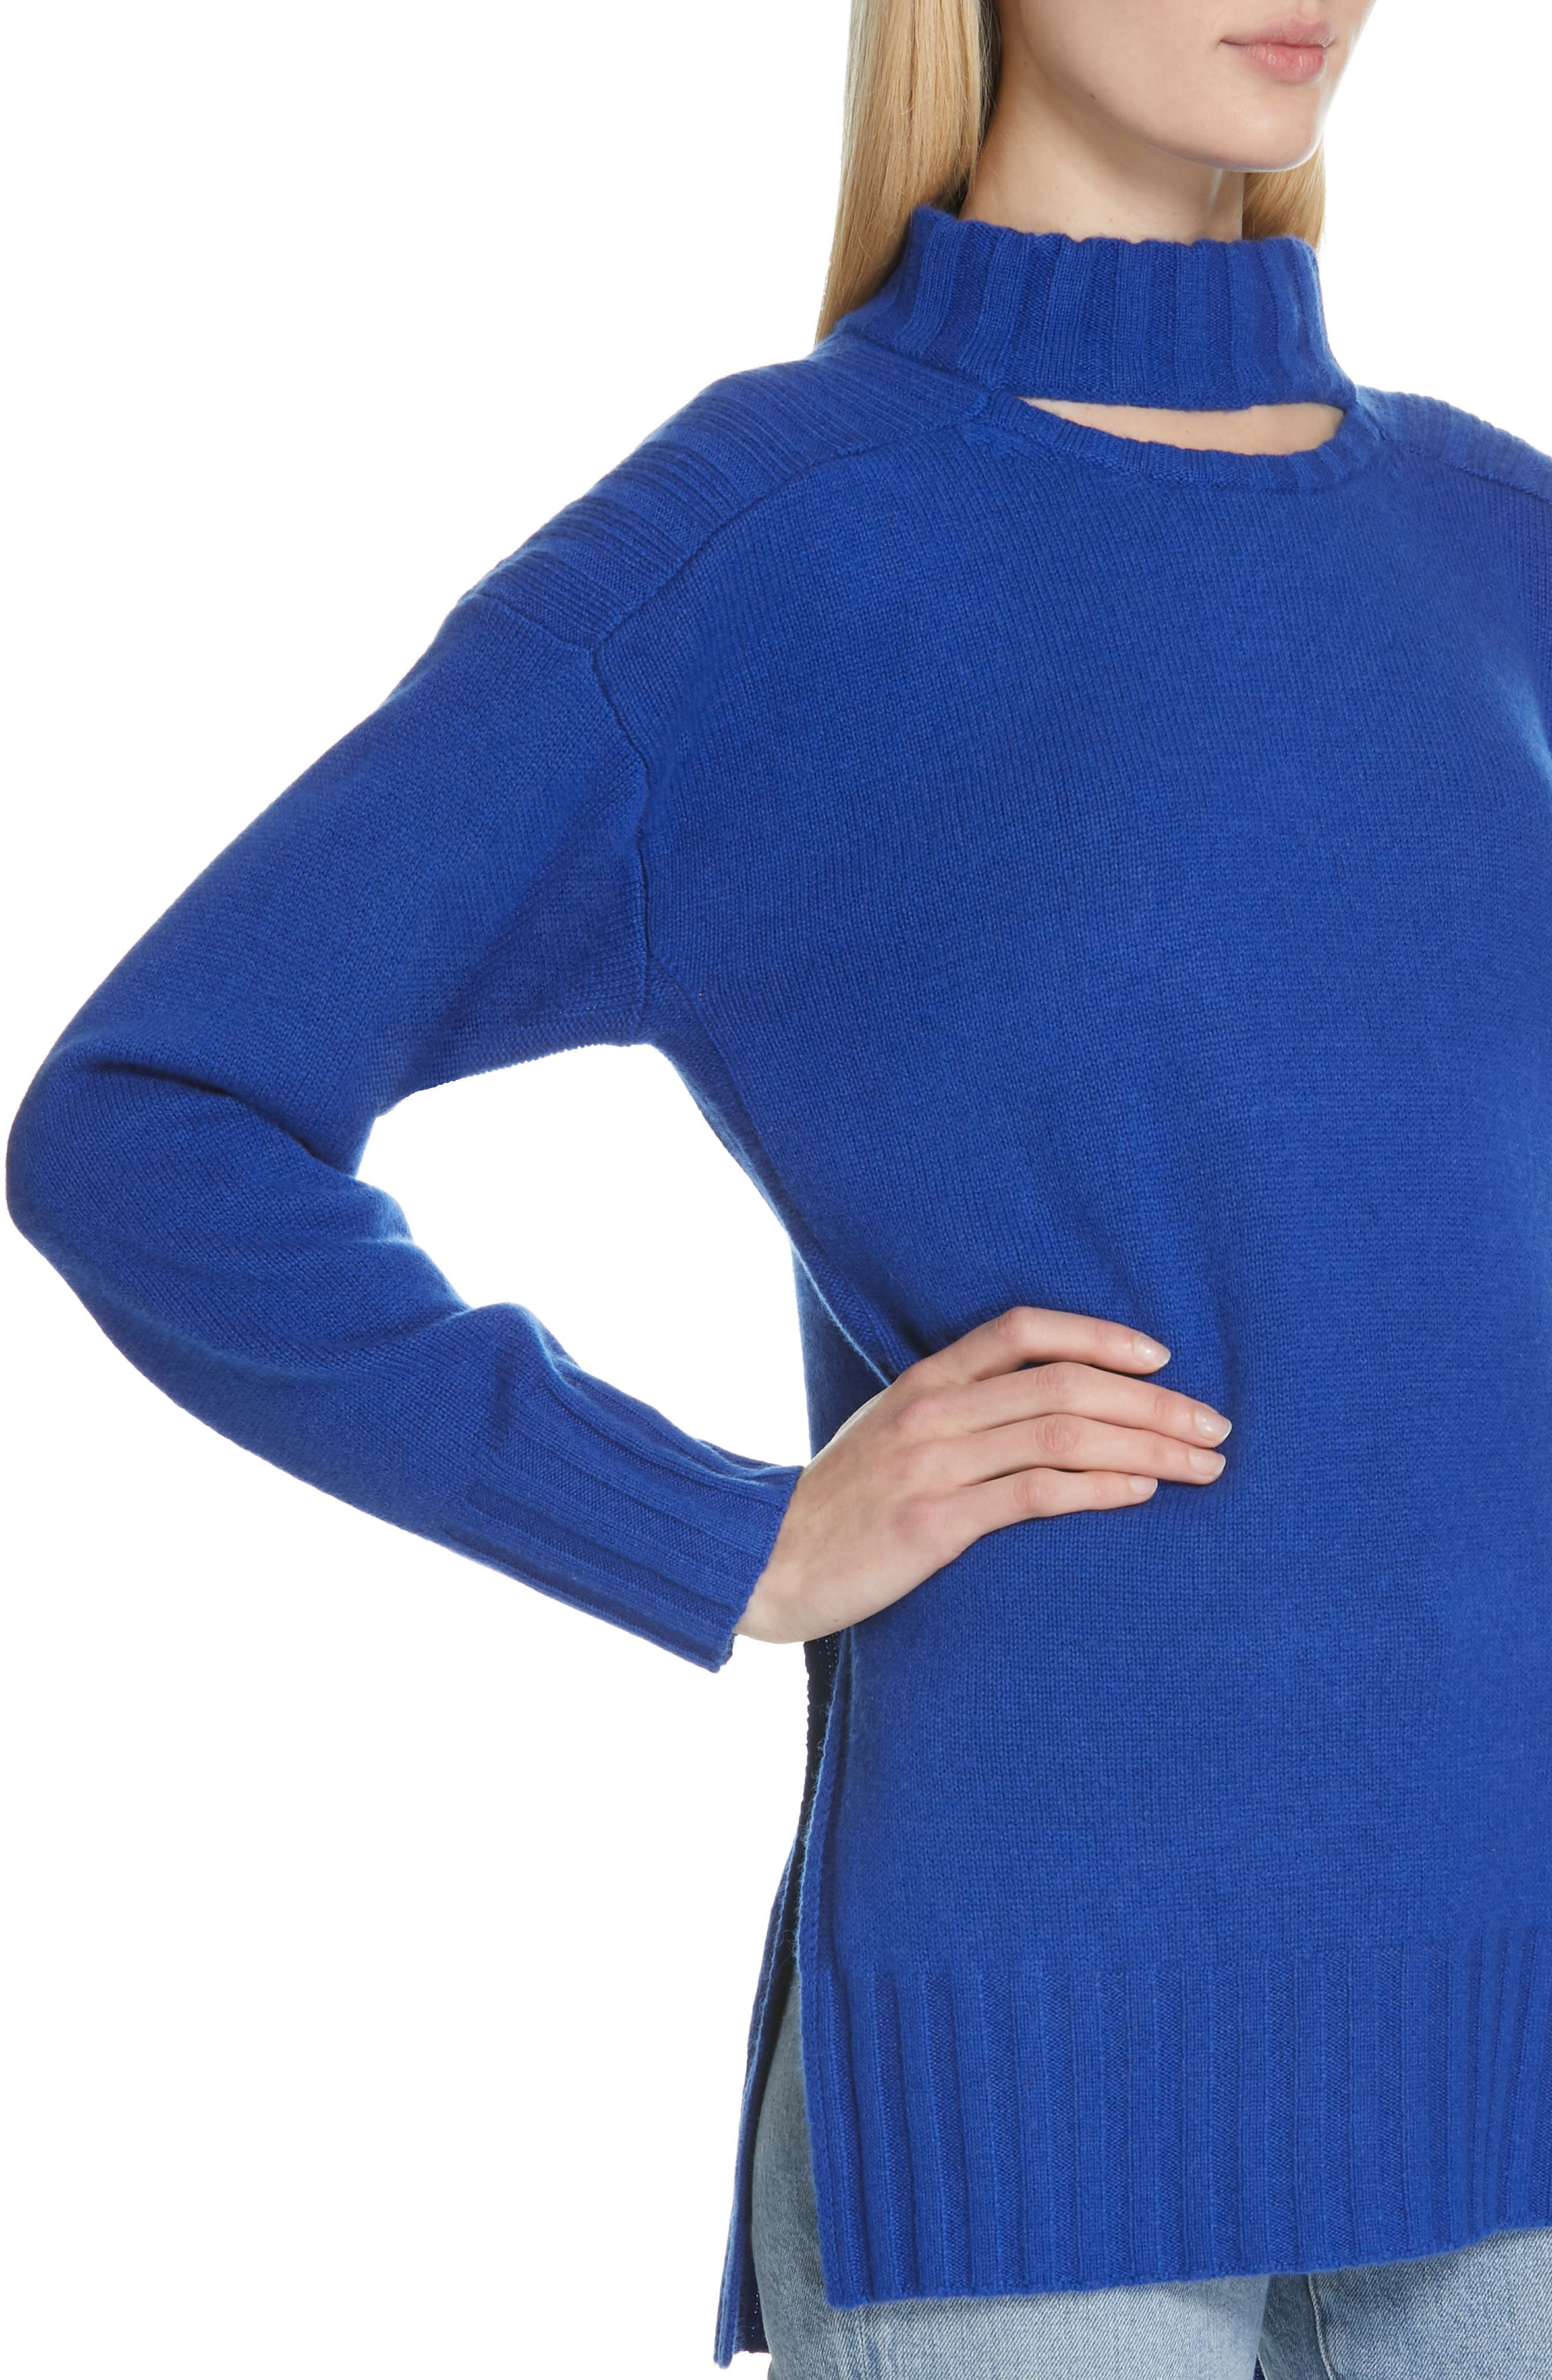 Stratford Wool & Cashmere Sweater,                             Alternate thumbnail 4, color,                             HYPER BLUE